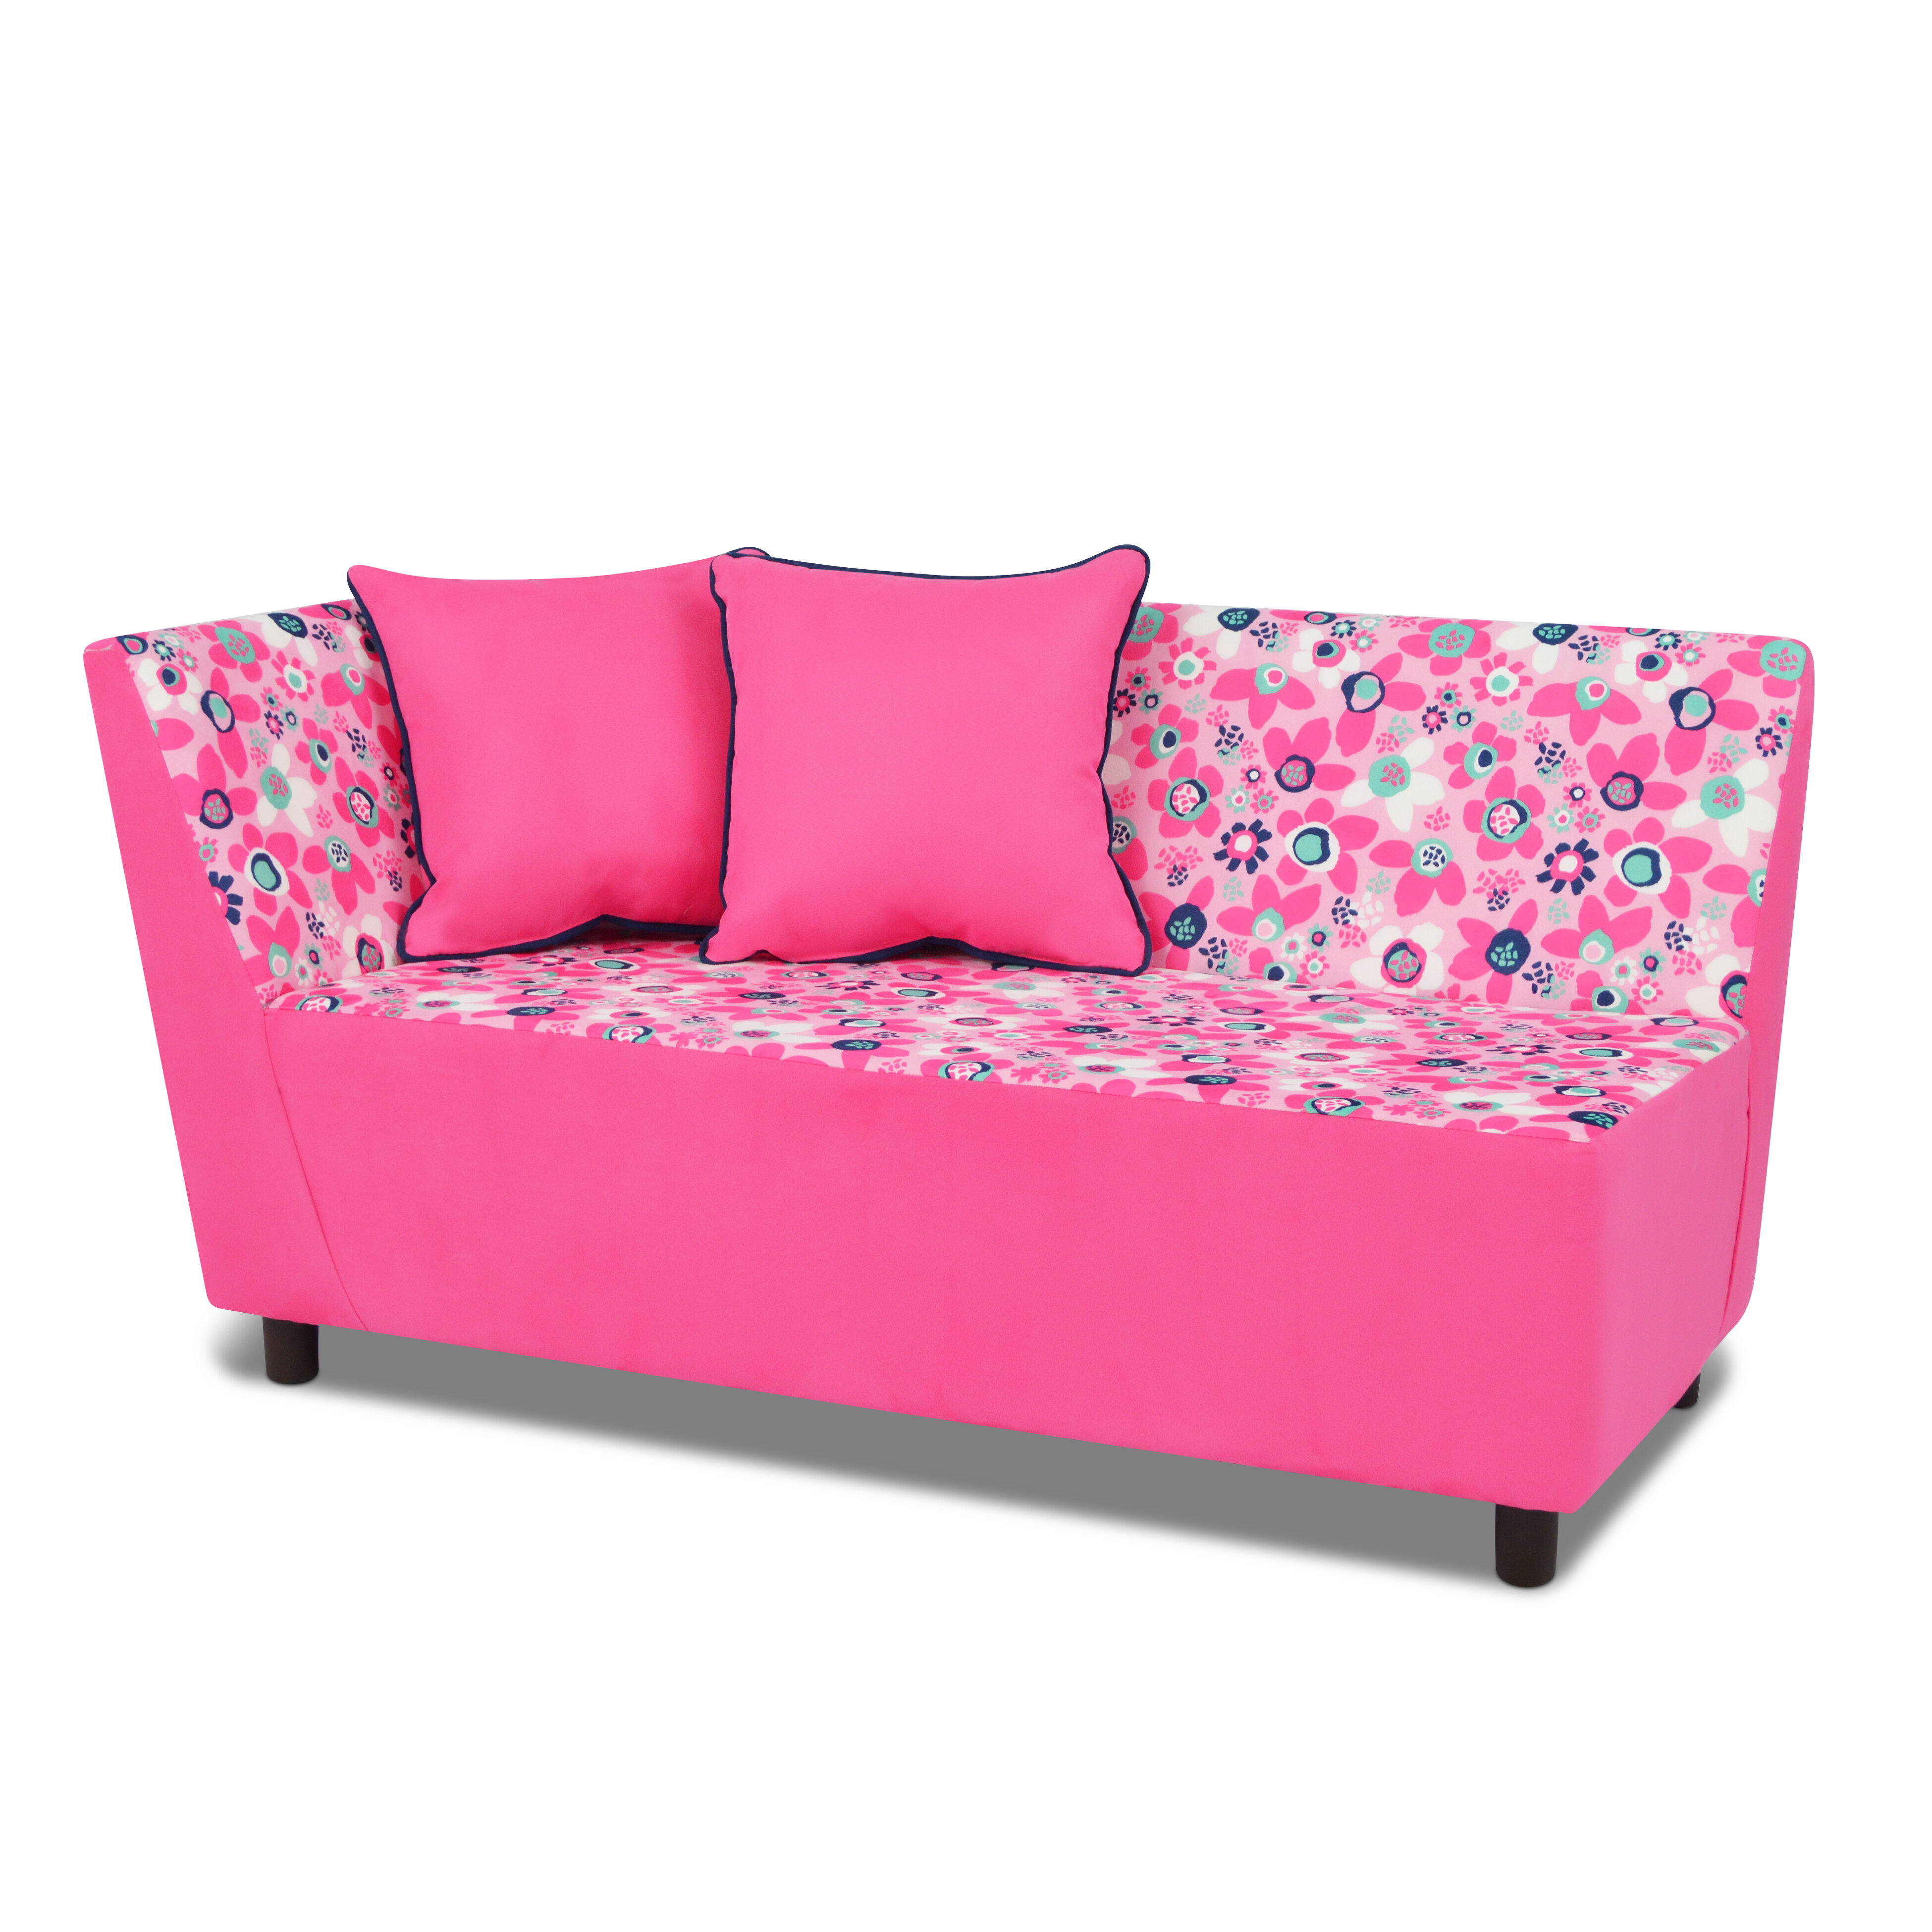 fresh gallery image pink home decor and lounge finest photograph layout wallpaper chaise